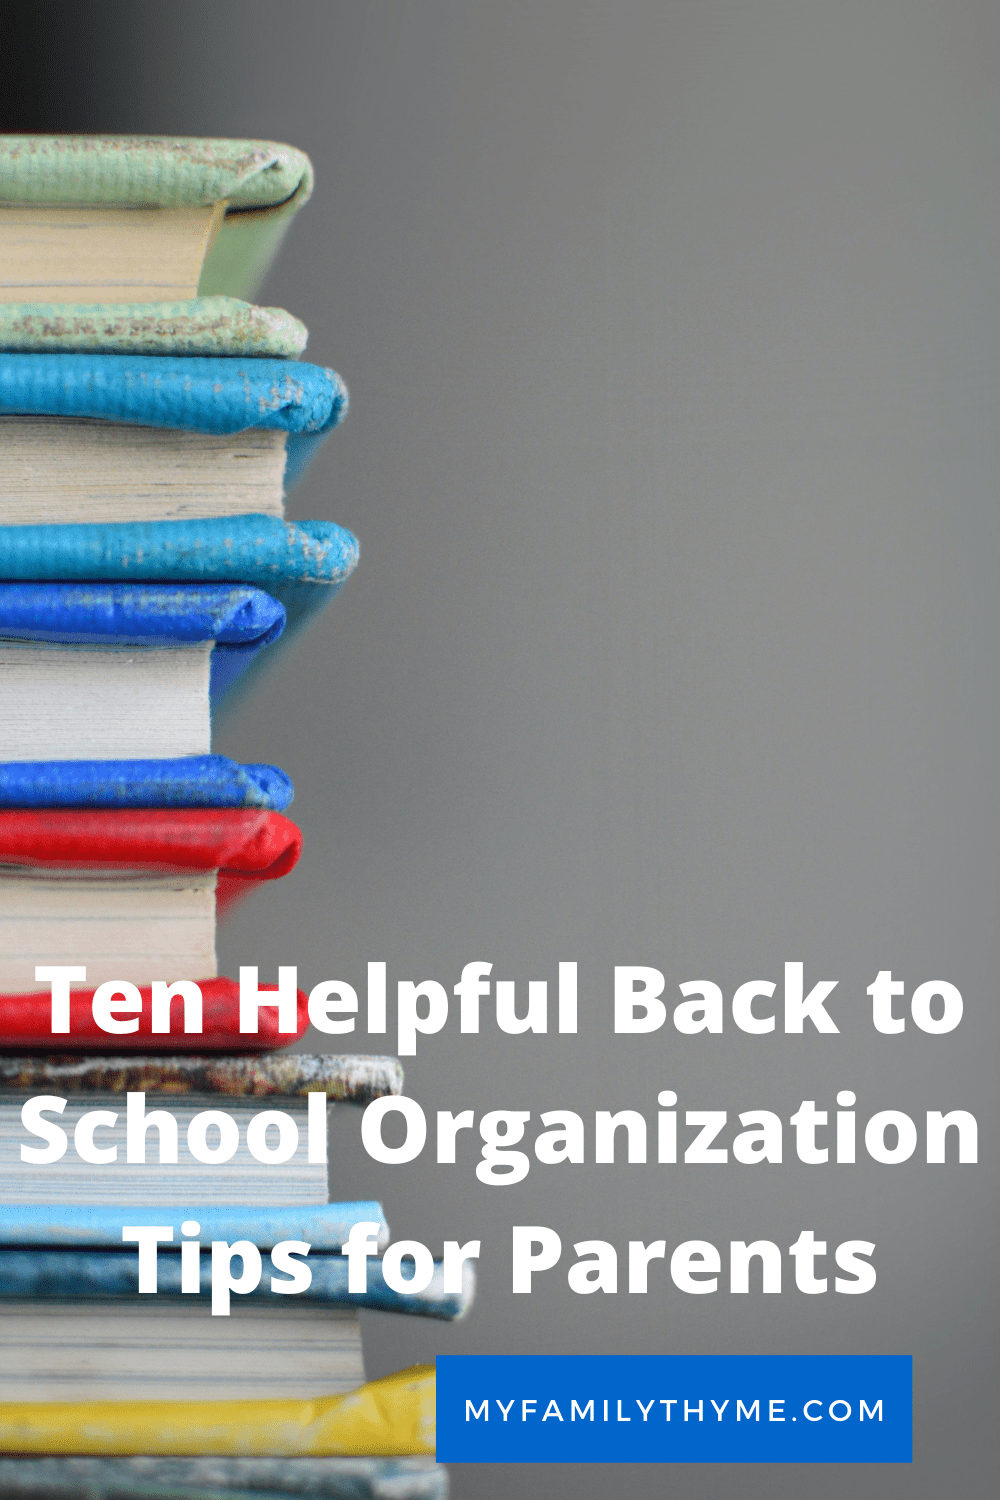 https://myfamilythyme.com/wp-content/uploads/2016/08/Ten-Helpful-Back-to-School-Tips.png